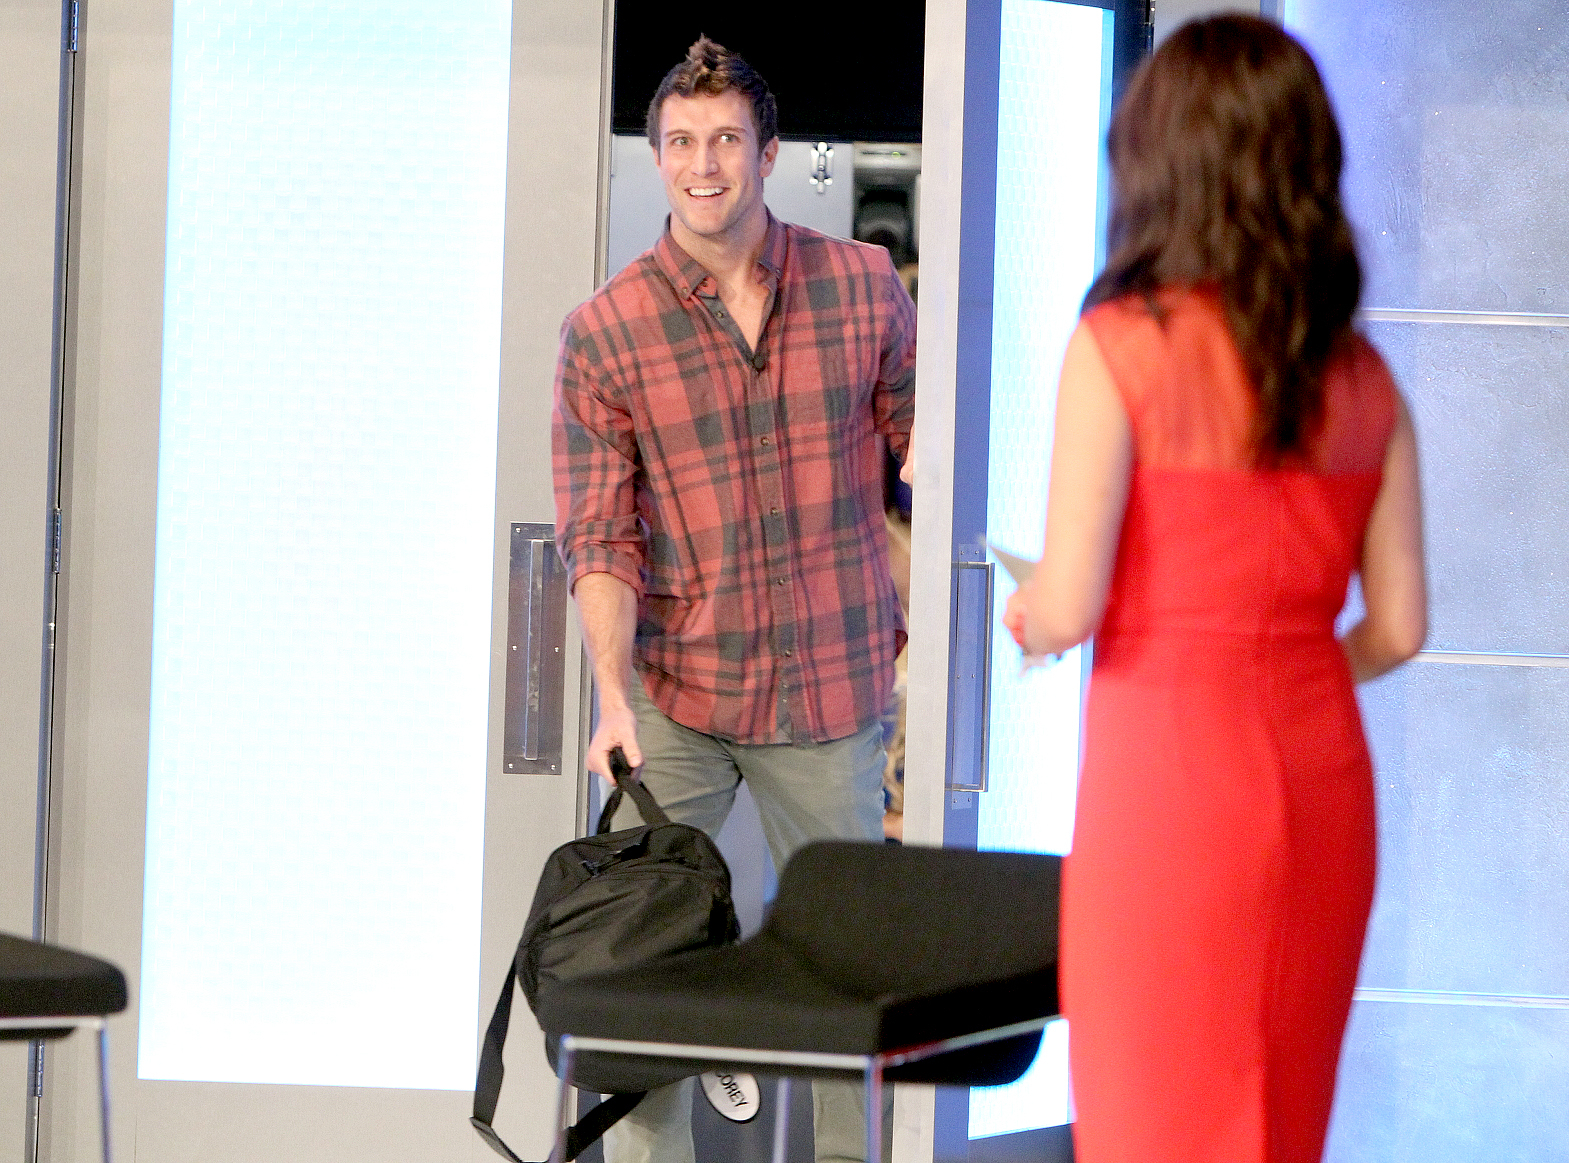 Corey Brooks is evicted on Live Eviction night on Big Brother, September 14th.